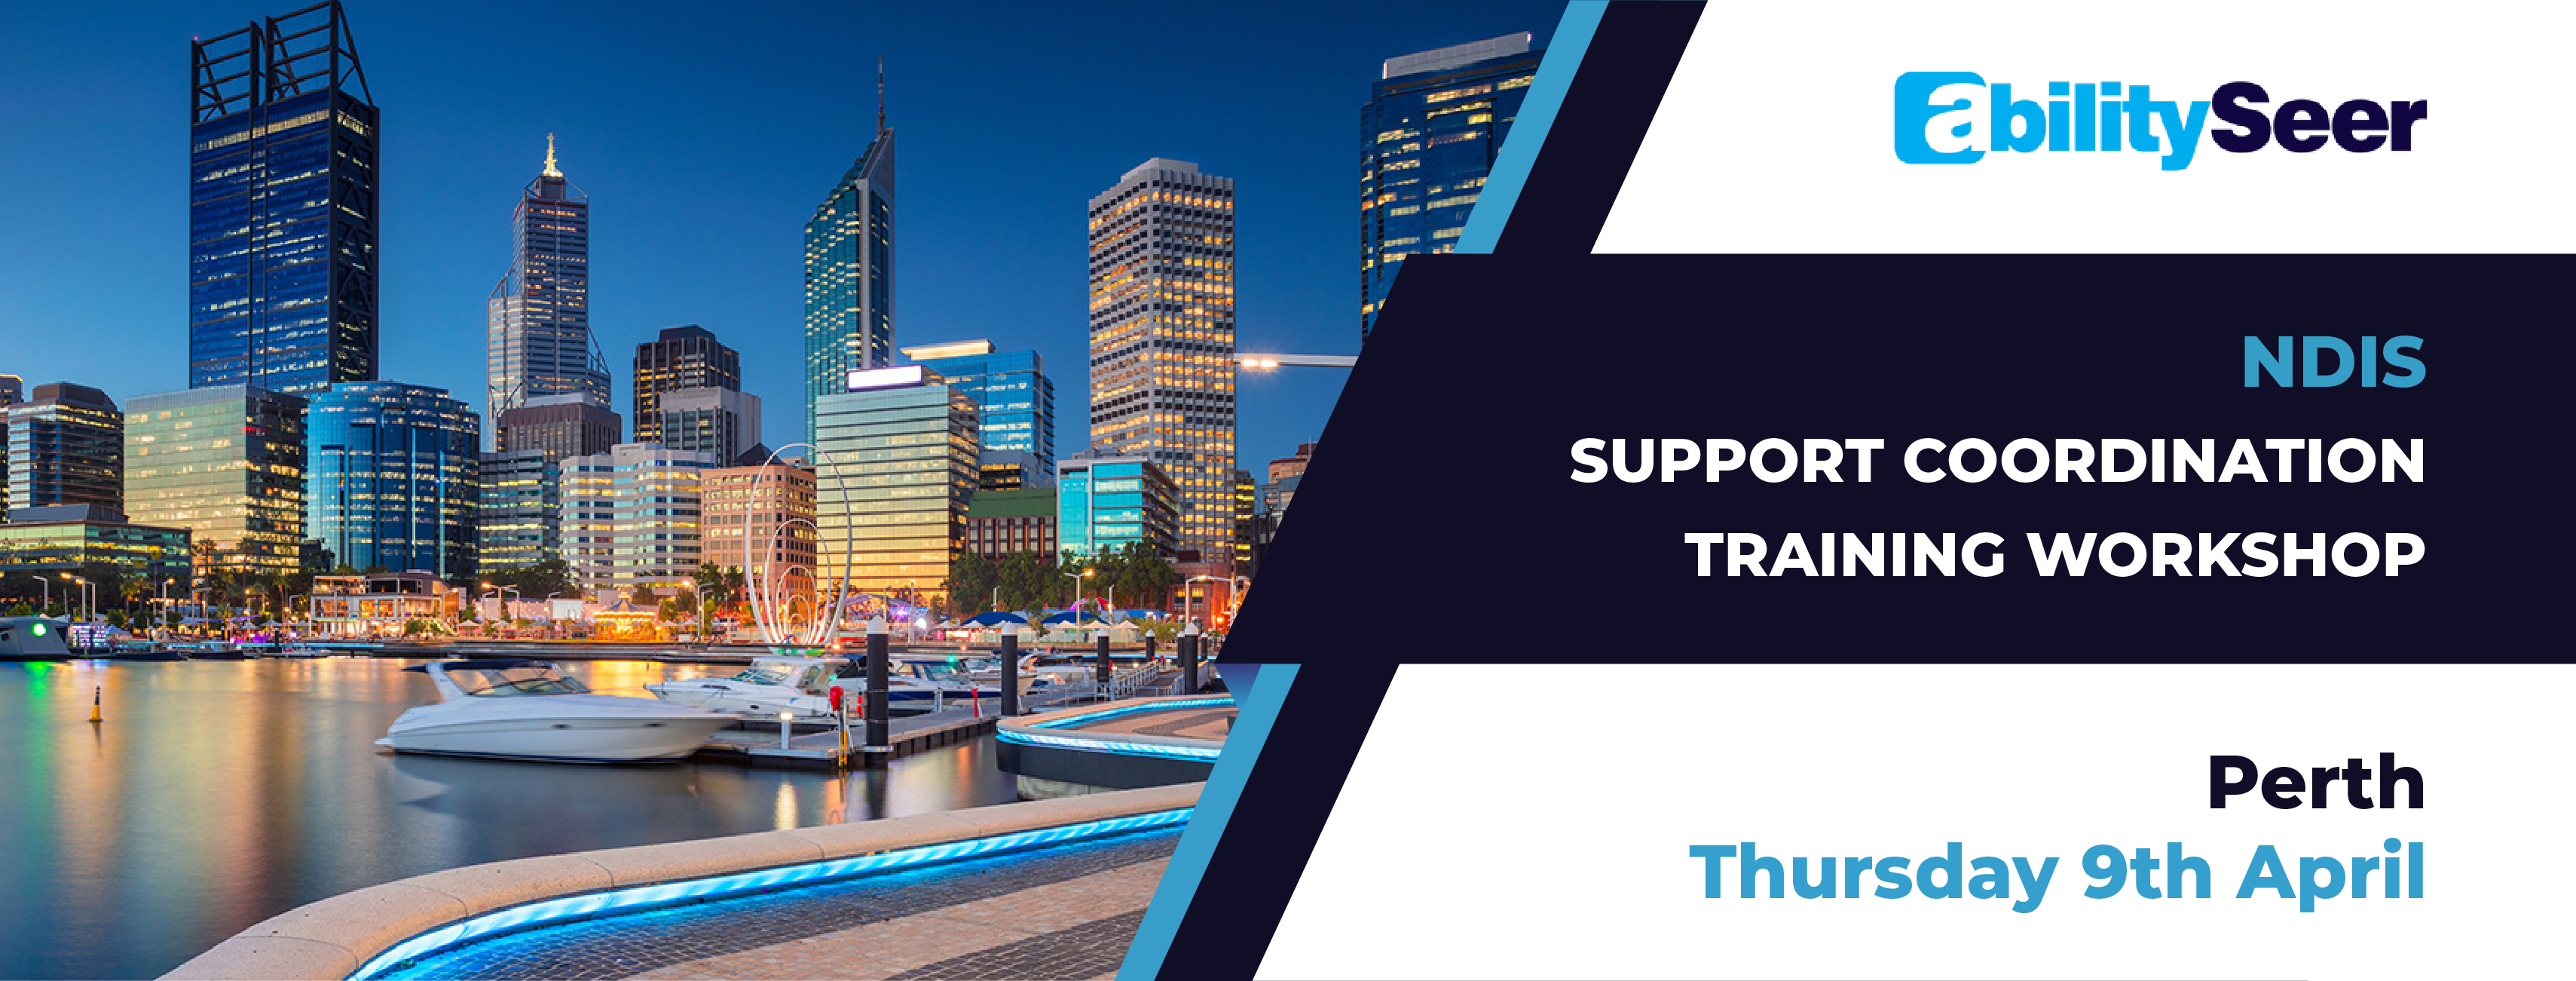 NDIS Support Coordination Training Workshop - 9th April 2020, Perth